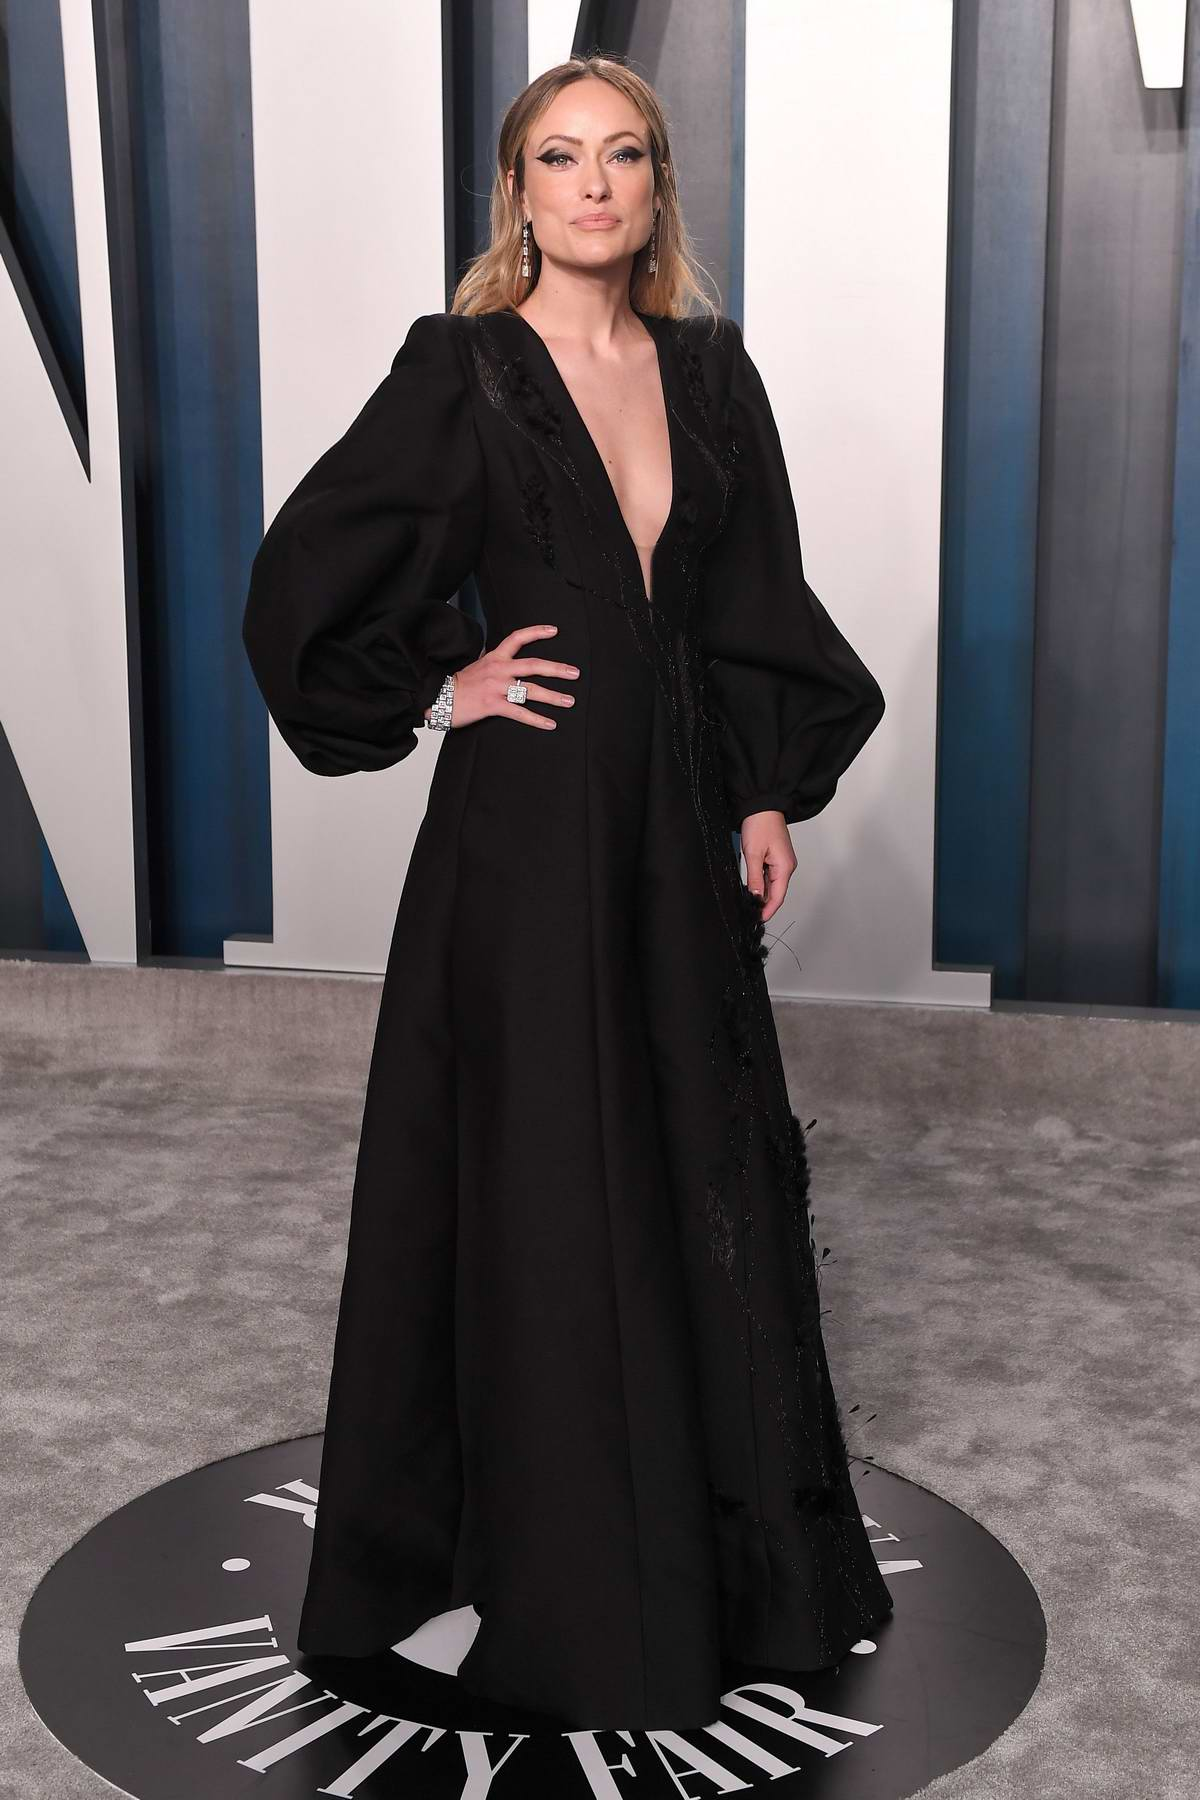 Olivia Wilde attends the 2020 Vanity Fair Oscar Party at Wallis Annenberg Center for the Performing Arts in Los Angeles